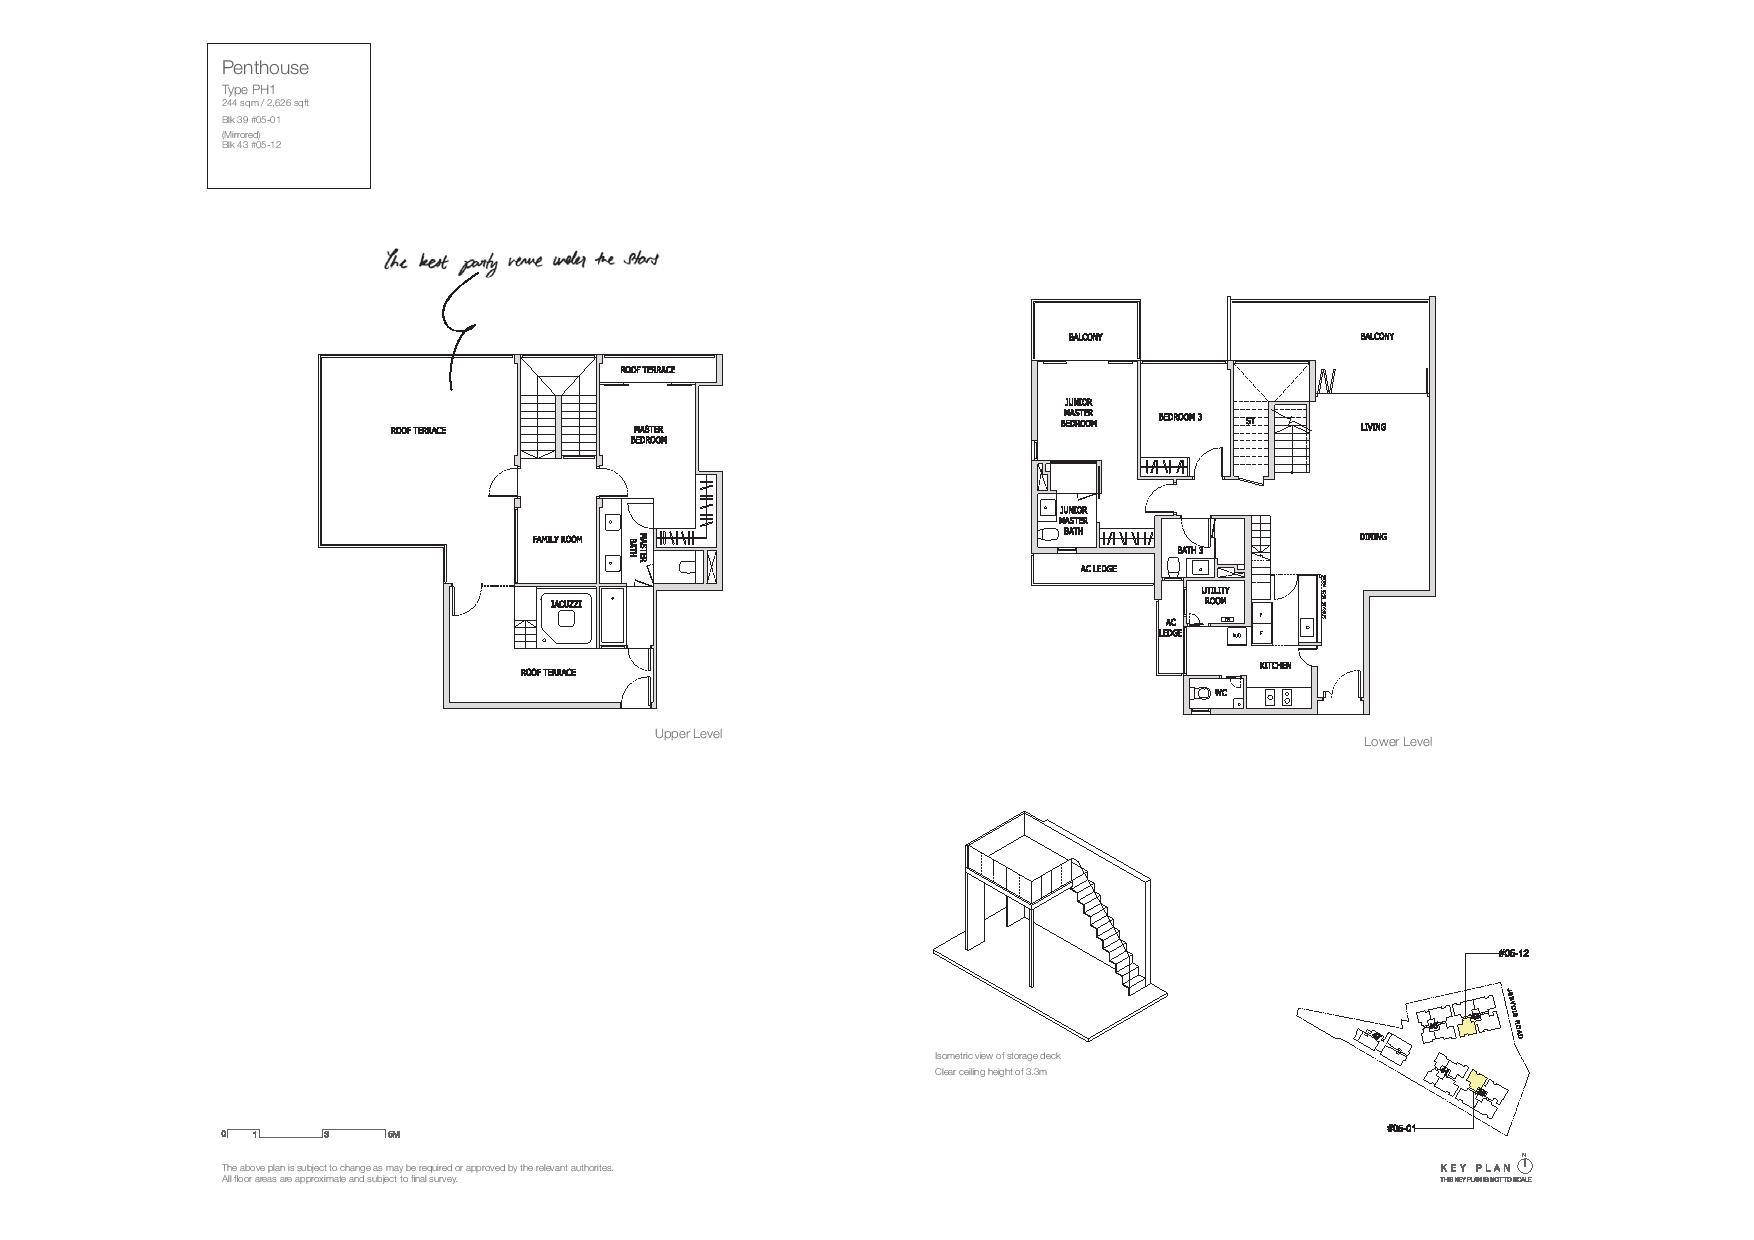 Mon Jervois Penthouse Floor Plans Type PH1